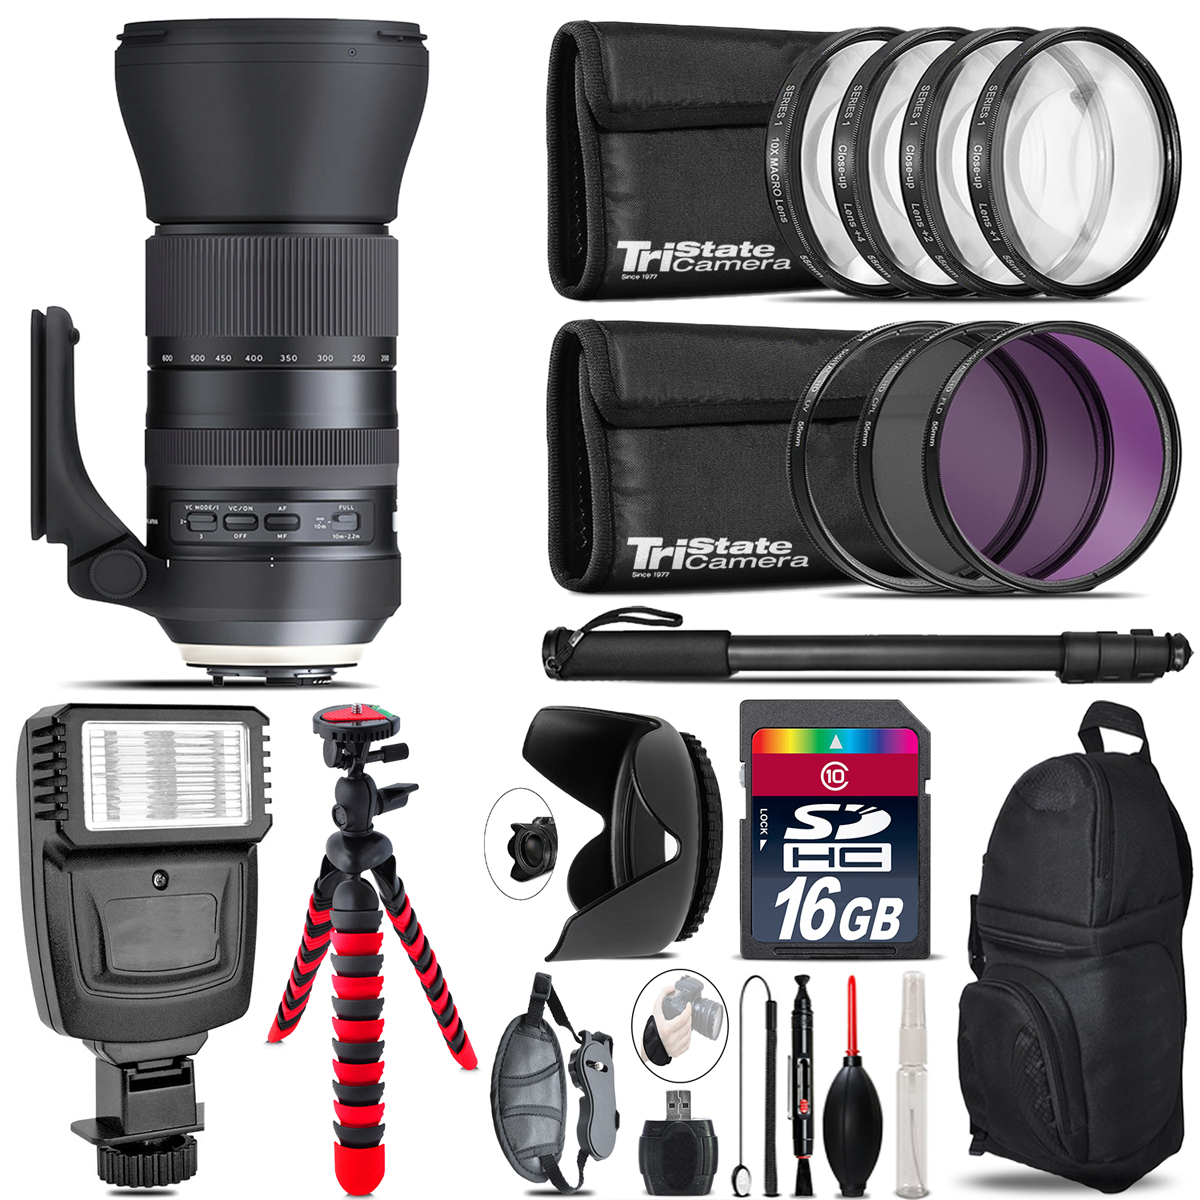 Tamron 150-600mm G2 for Nikon + Flash + Tripod & More - 16GB Accessory Kit *FREE SHIPPING*